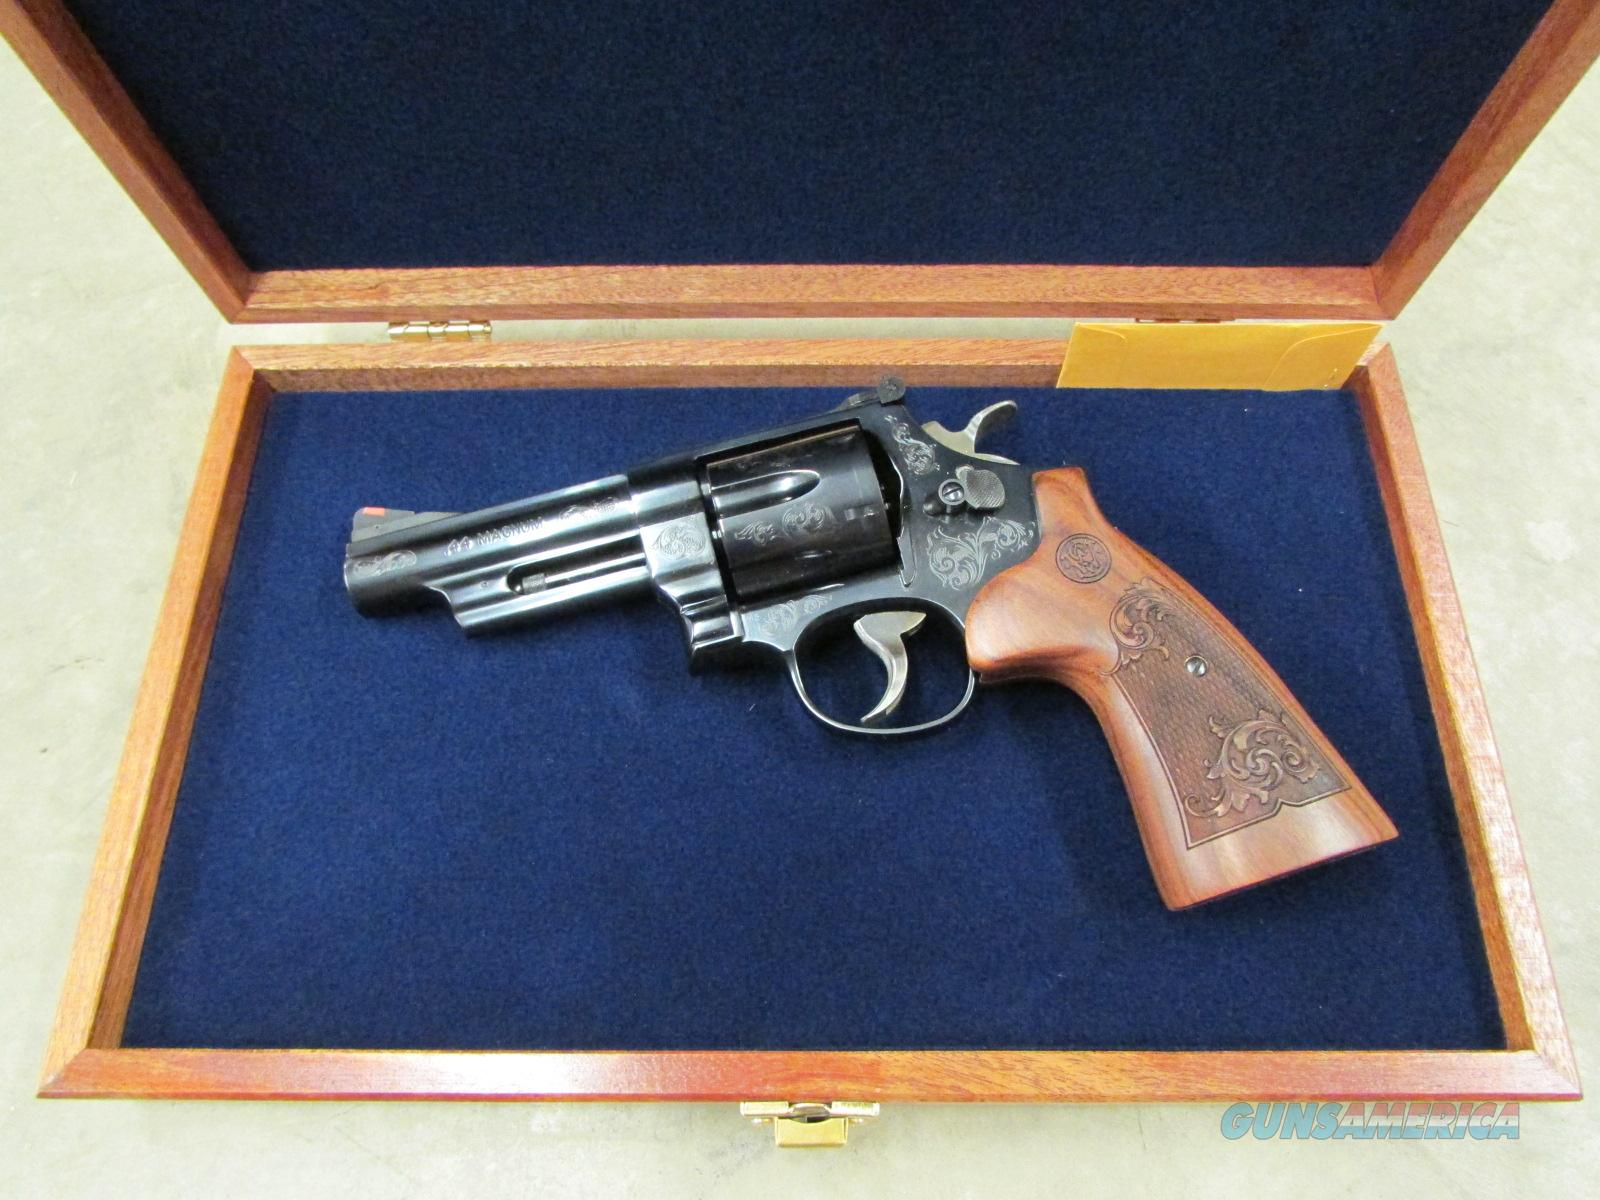 Smith & Wesson Model 29 Engraved .44 Magnum Mahogany Display 150783  Guns > Pistols > Smith & Wesson Revolvers > Full Frame Revolver